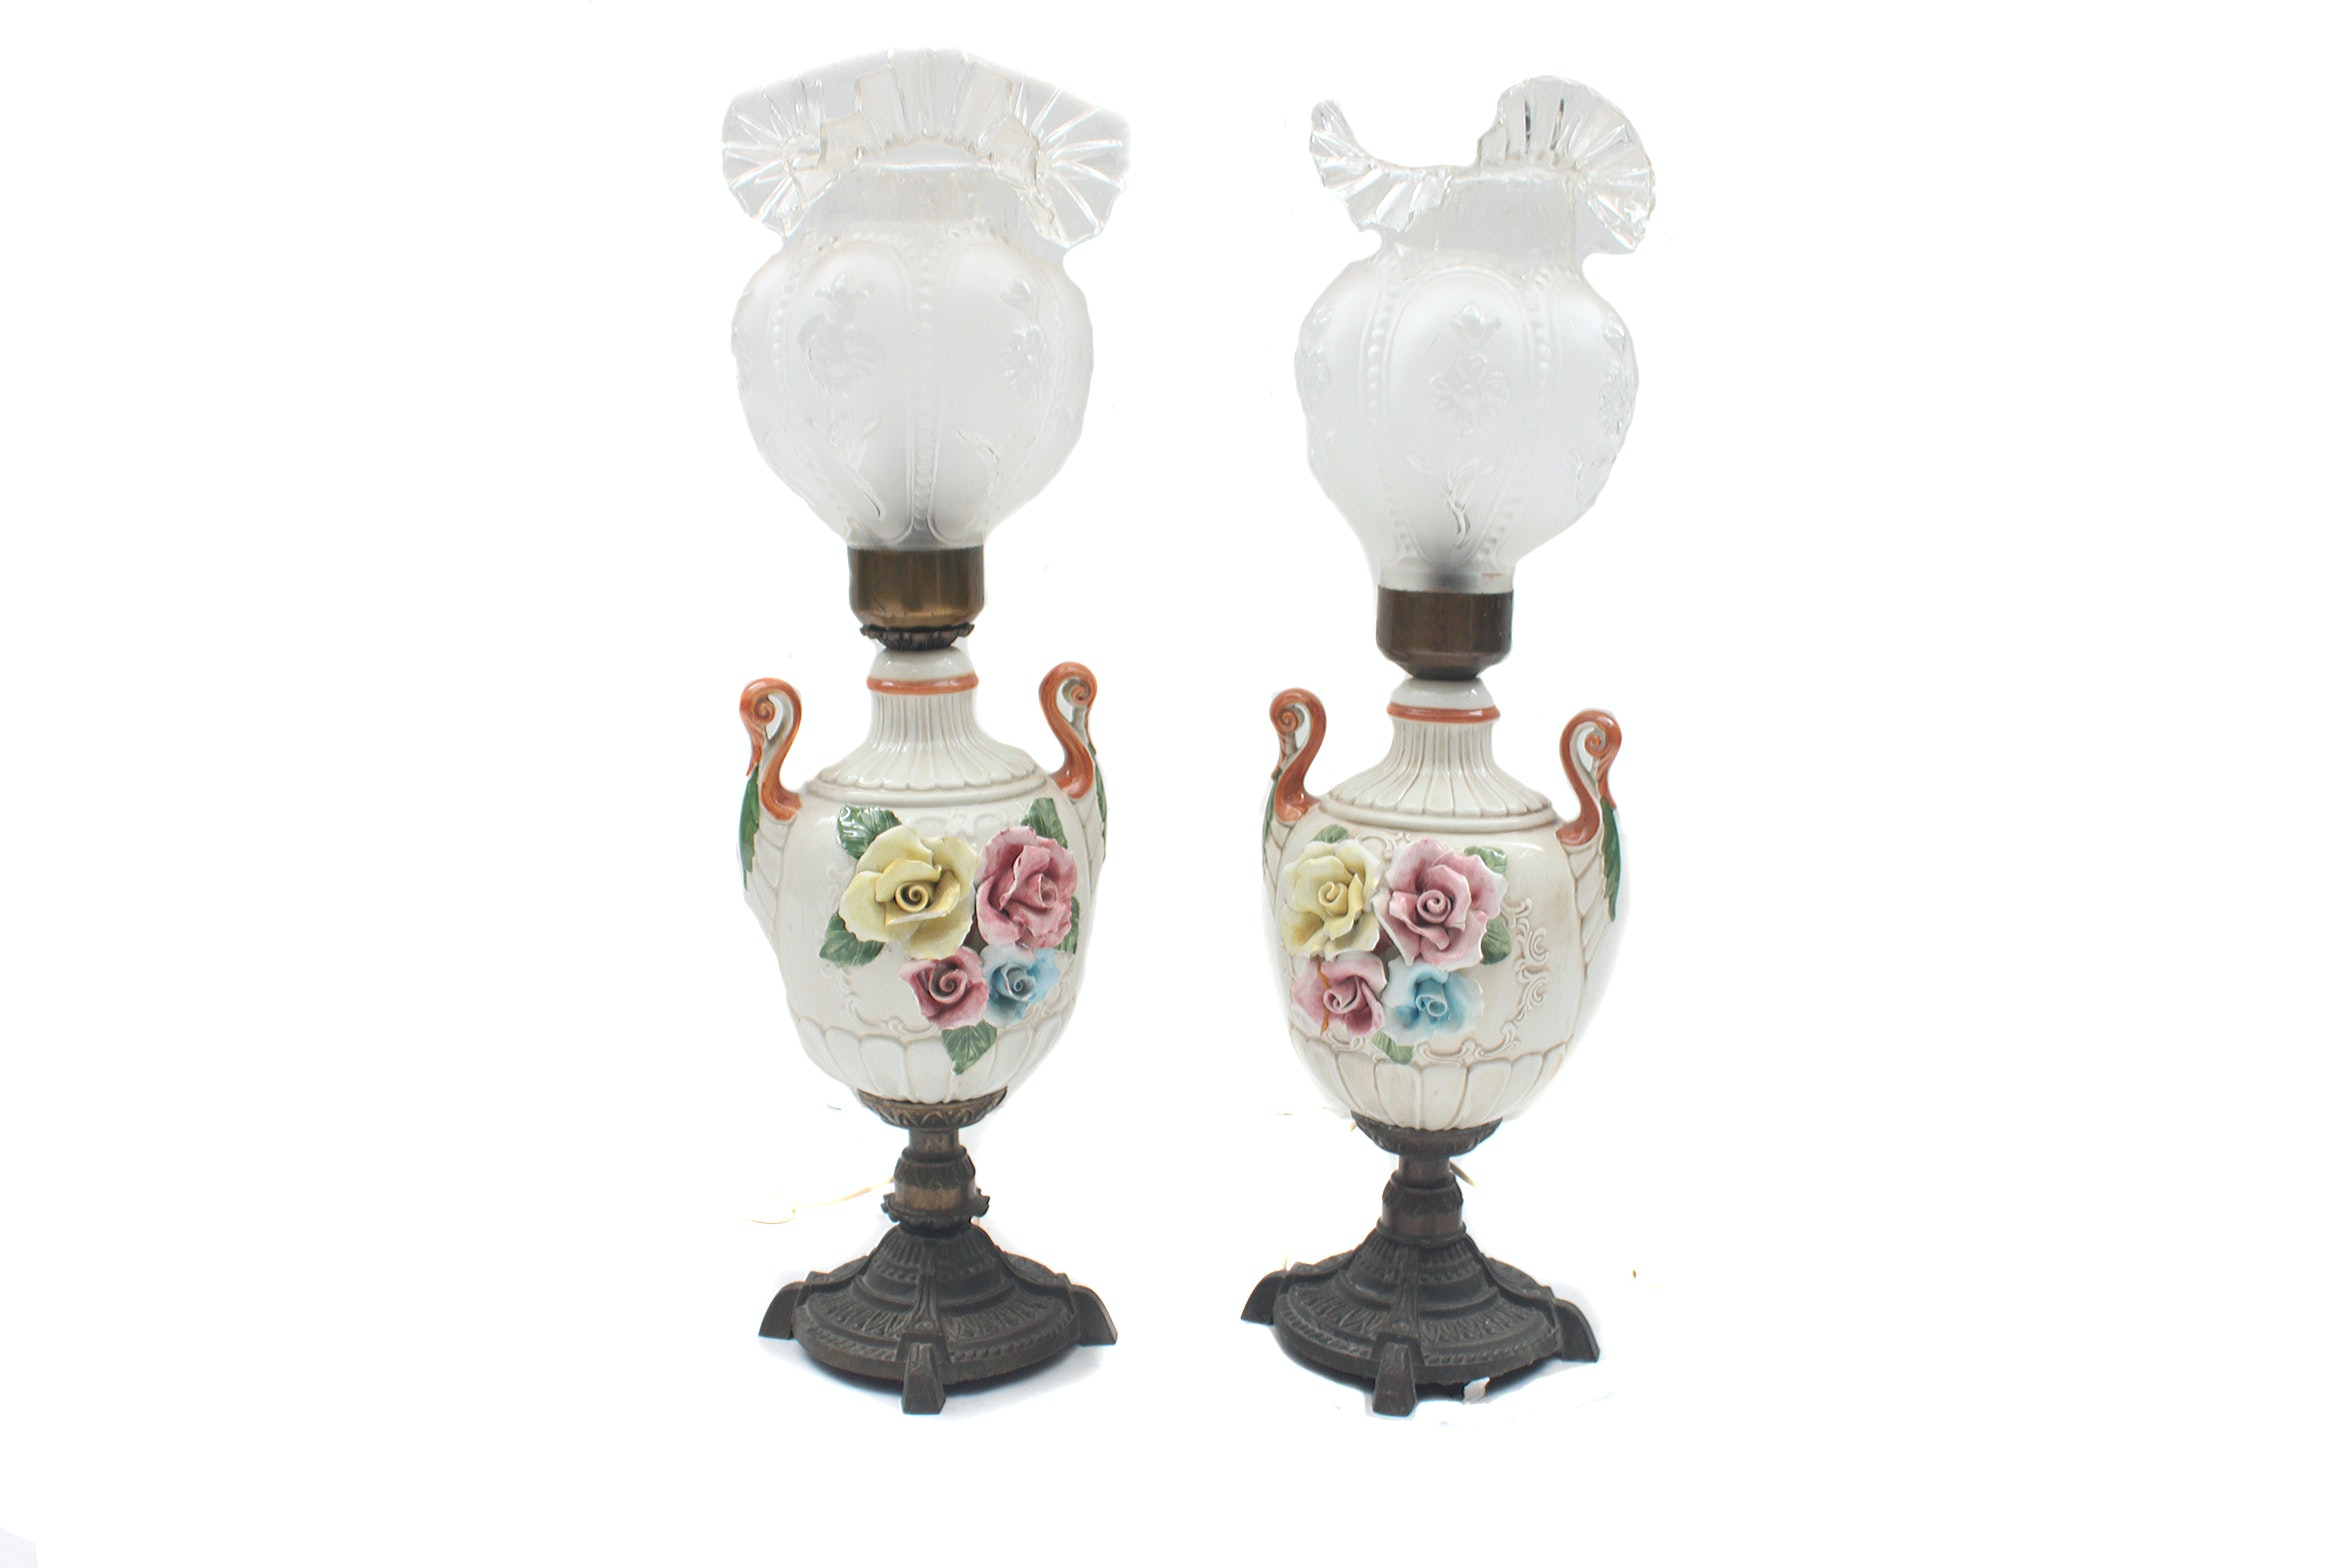 Pair of Urn Shaped Parlor Lamps